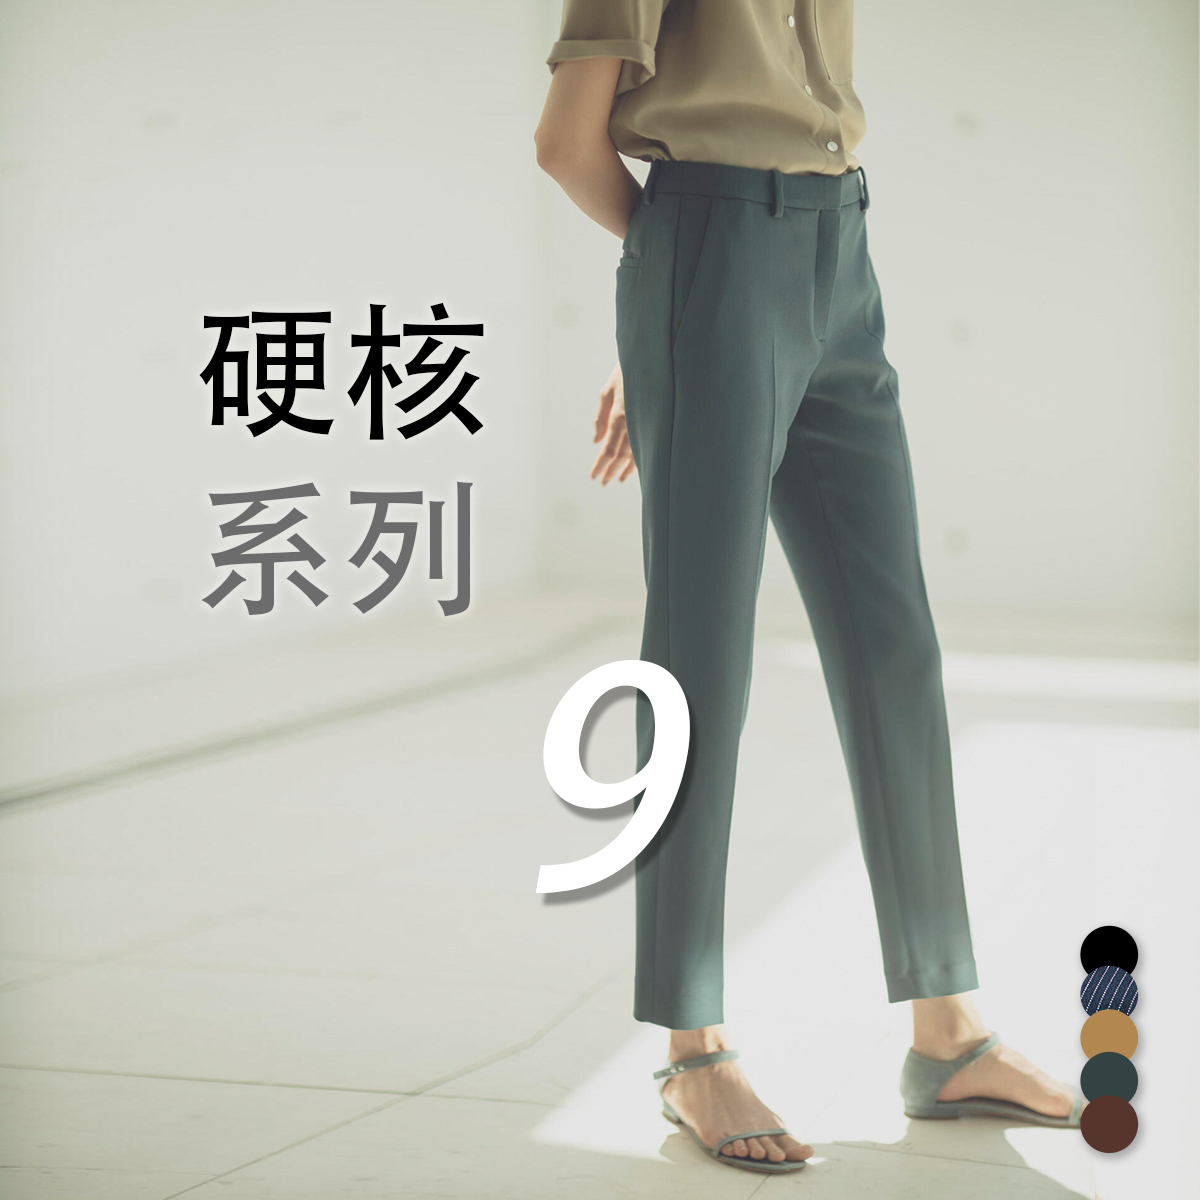 Hard core (9) urban trouser type lily cut Italian native fine spinning wool TH new series nine-point trousers